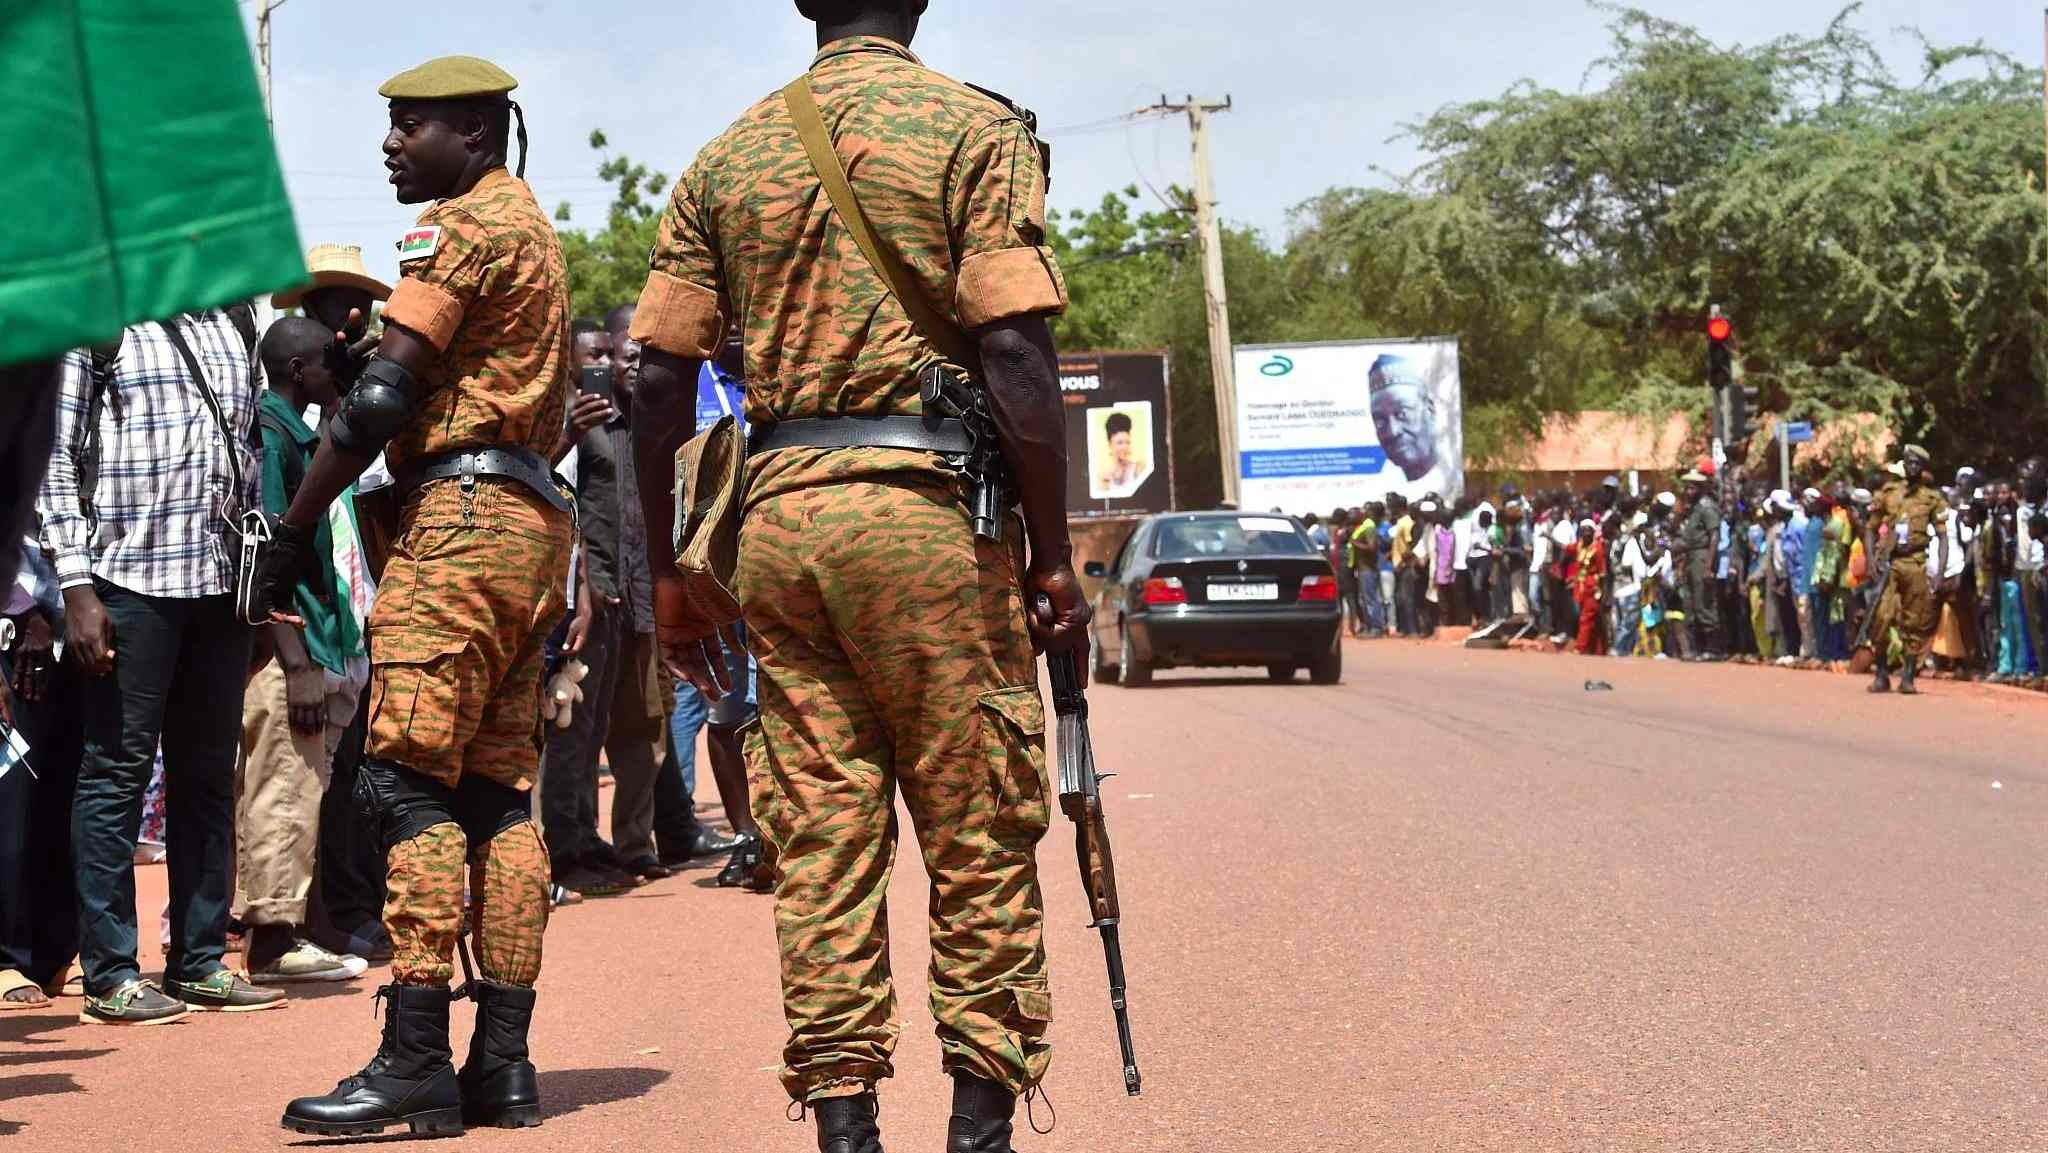 12 killed in Burkina Faso terrorist attack